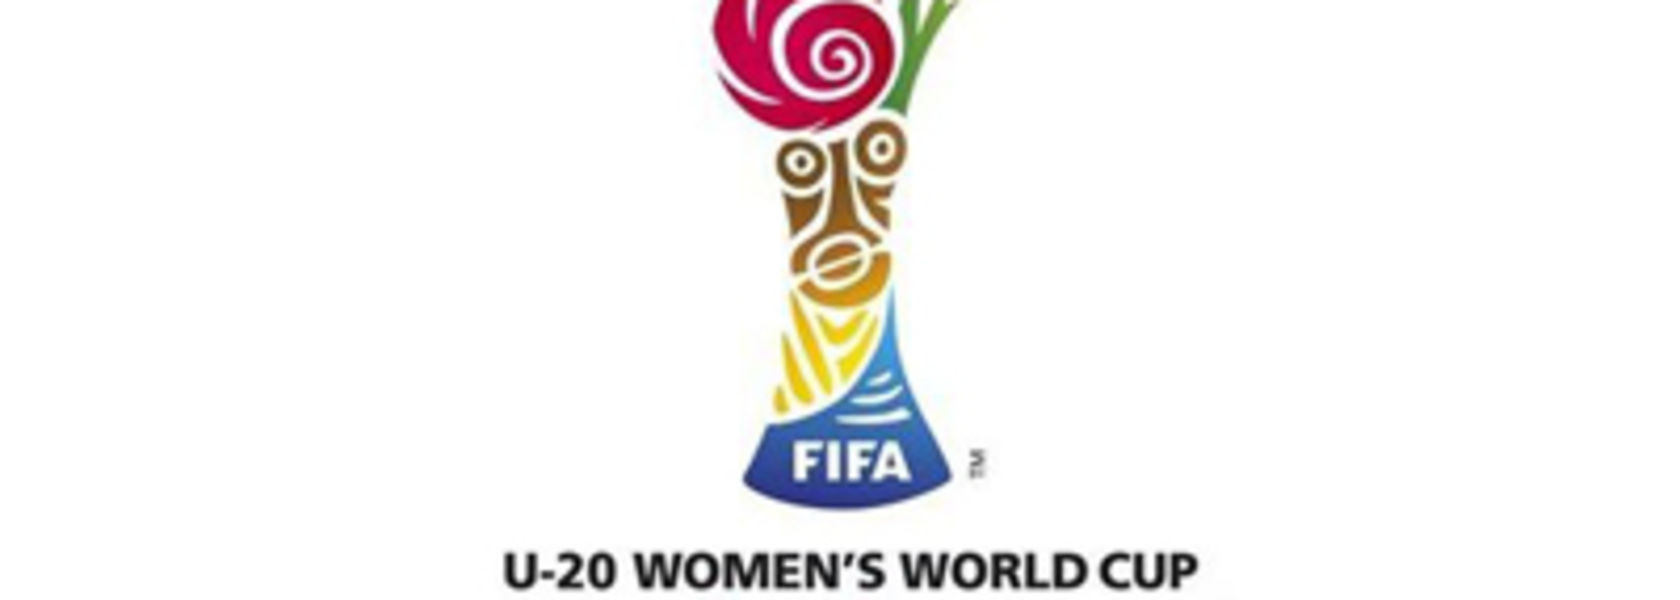 Under 20s offside at planned World Cup location - PNG Report